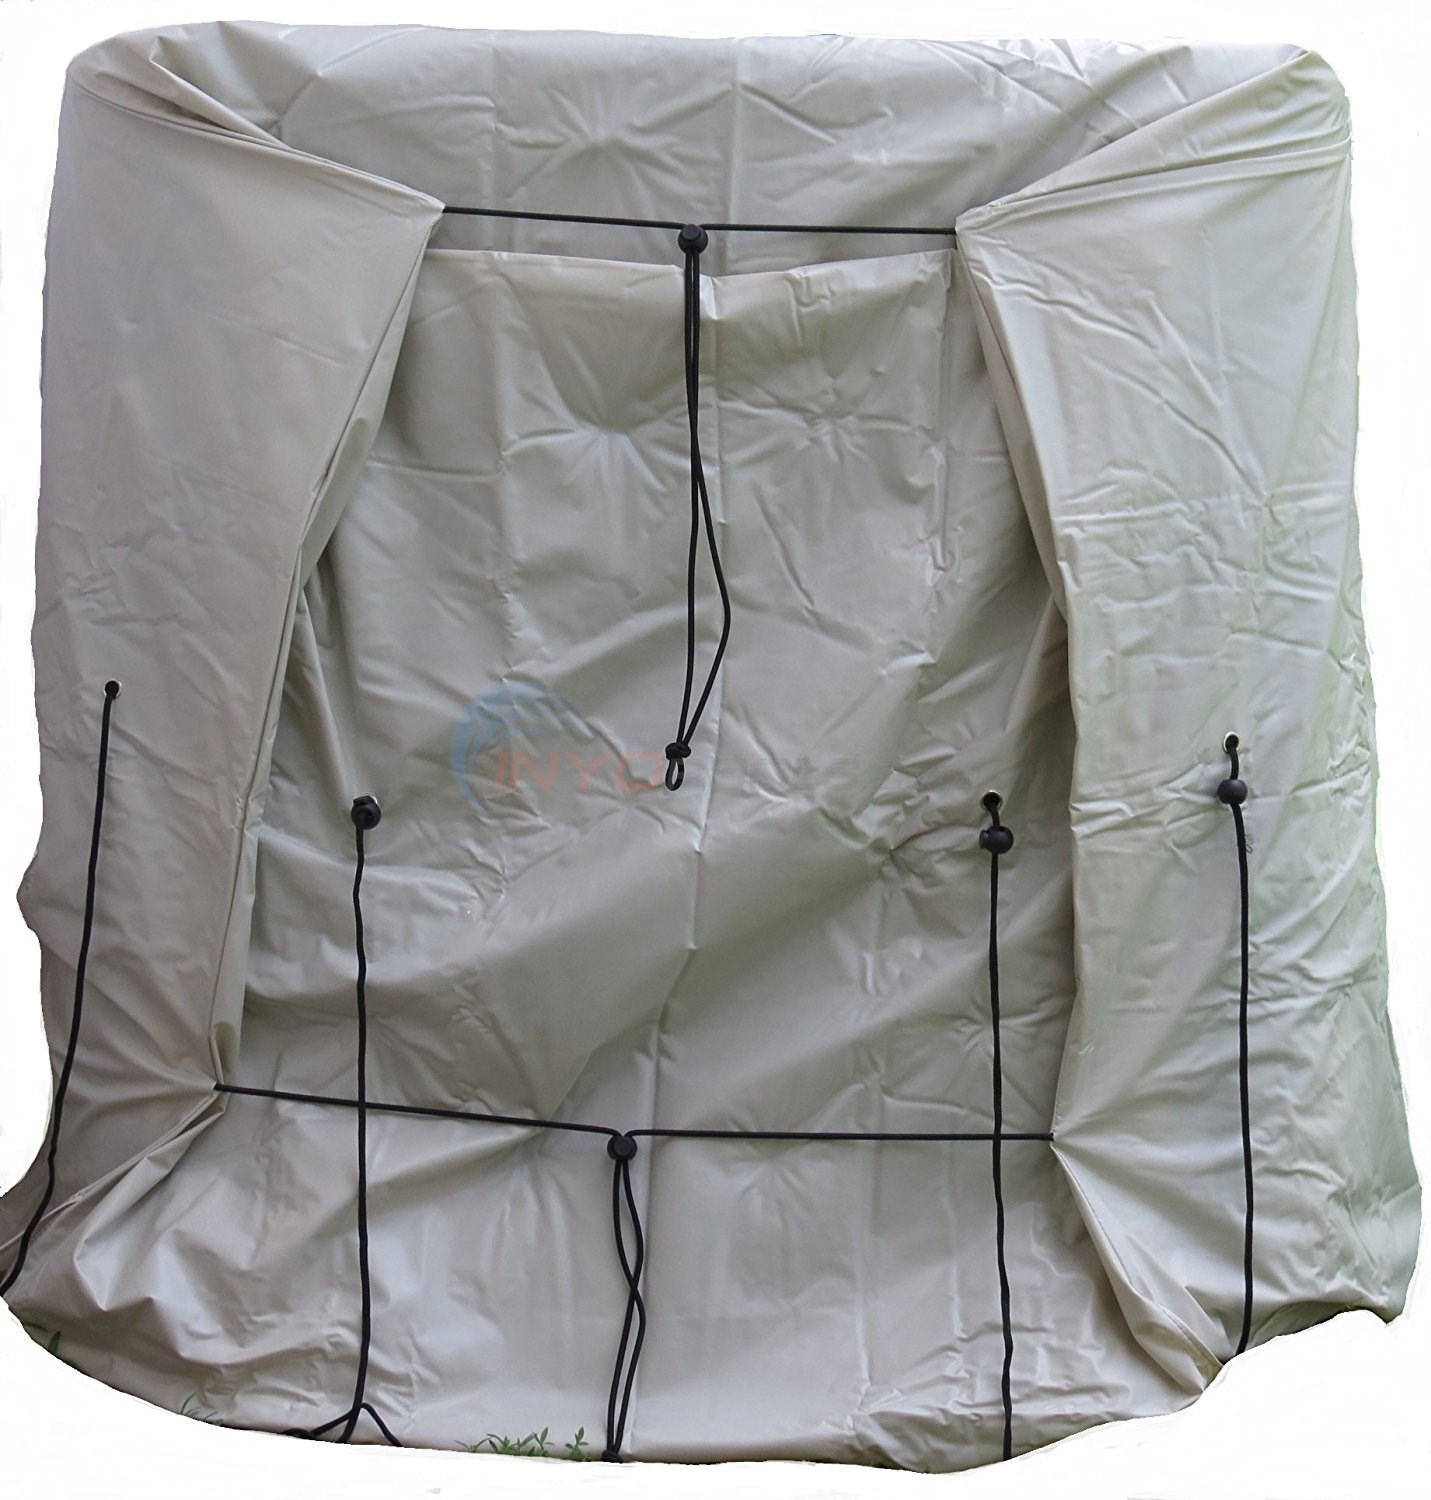 Pool Heat Pump Cover - One Size Fits All - OSCS-HC